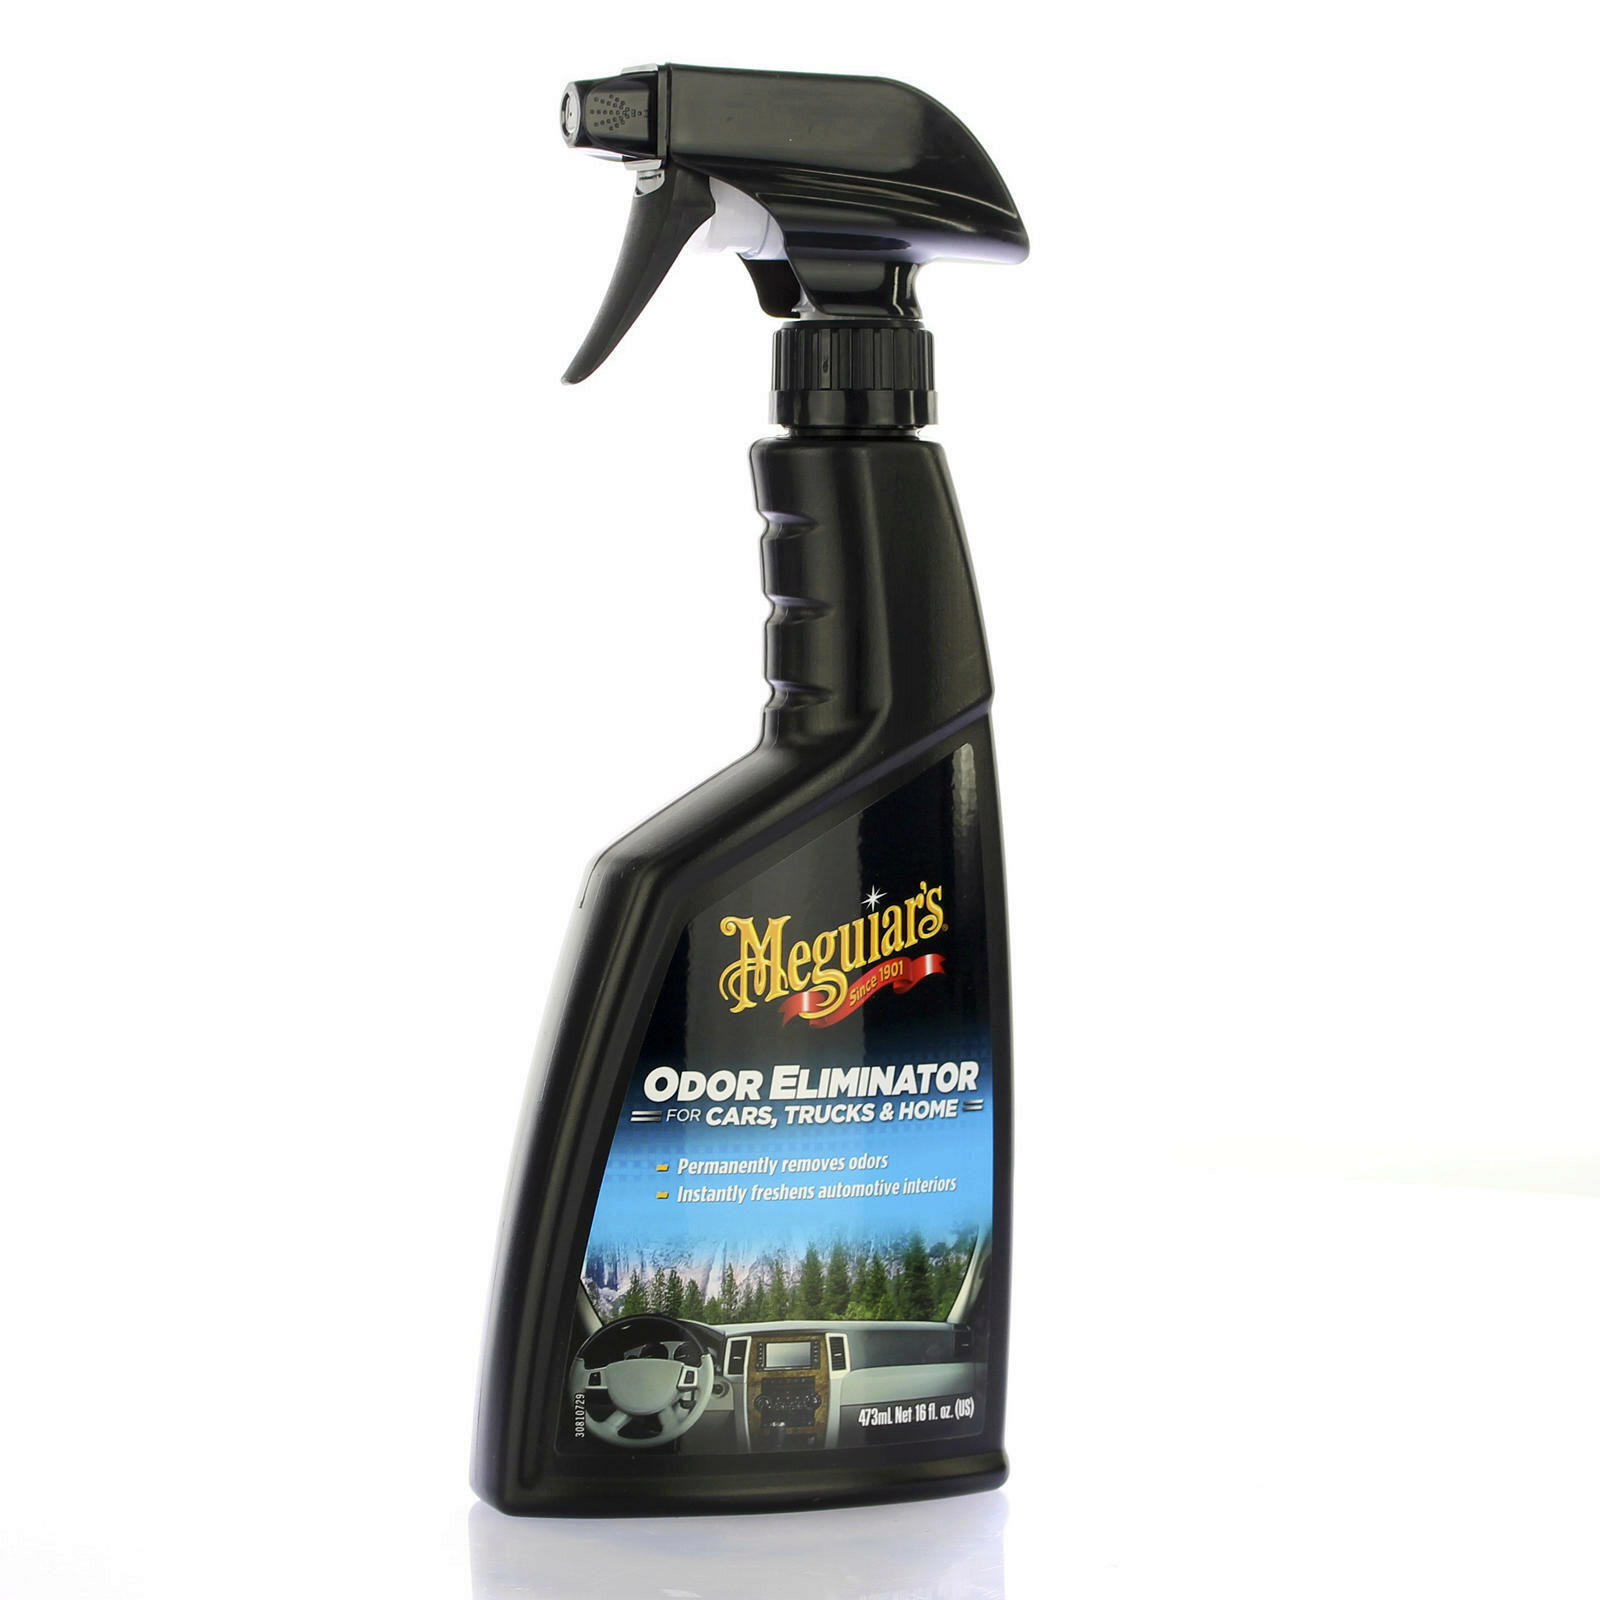 Meguiars Car Odor Eliminator 473ml Lufterfrischer